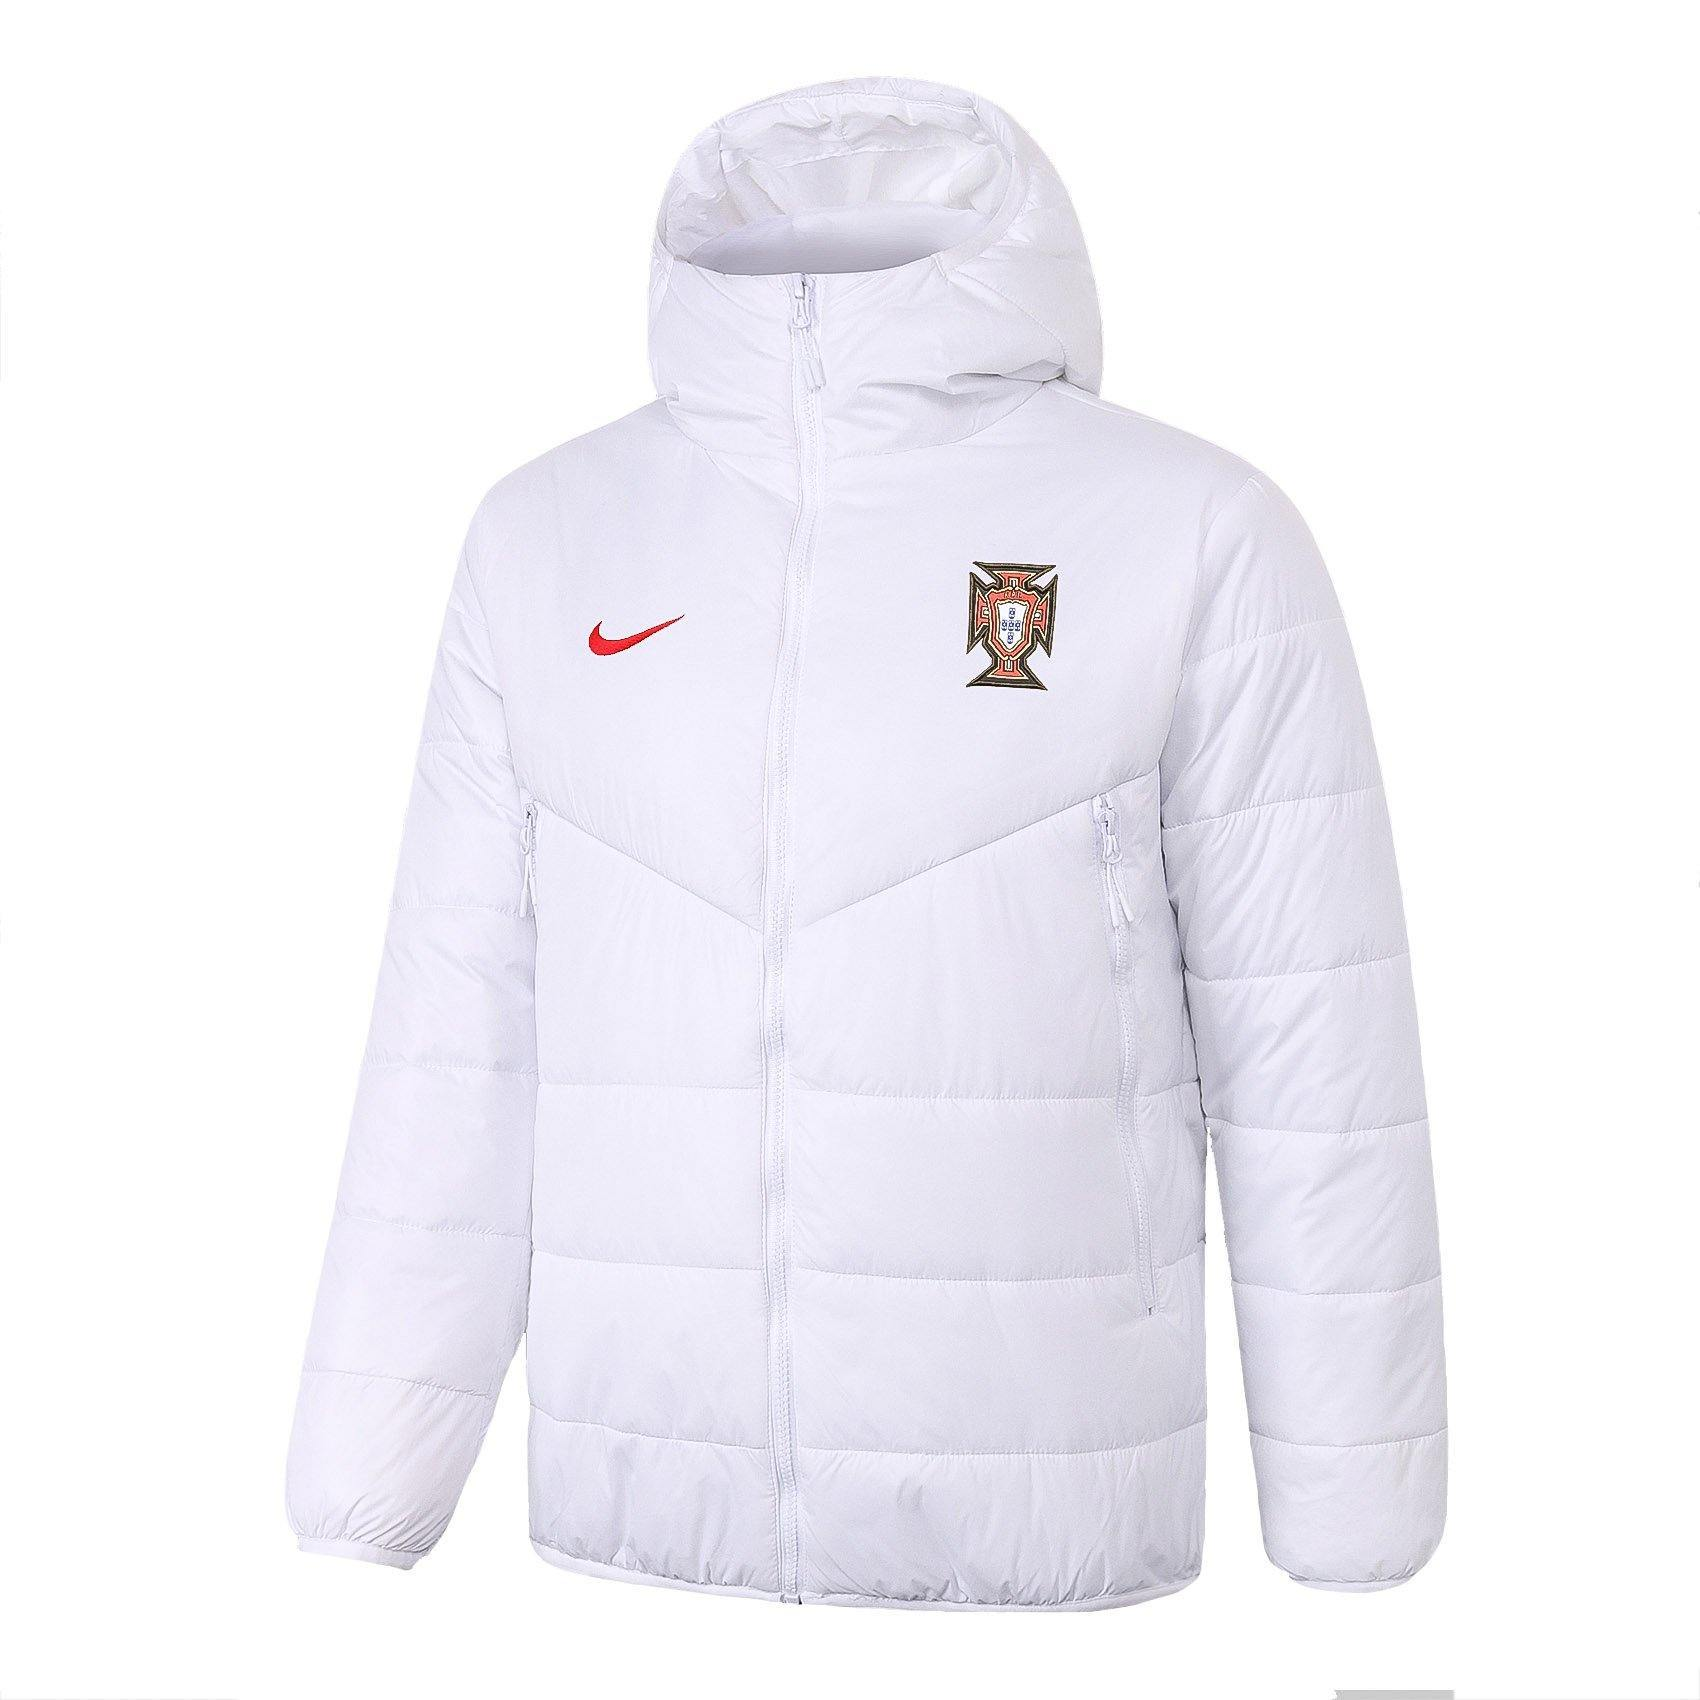 Doudoune Portugal Nike Blanche 2021 Homme freeshipping - Foot Online